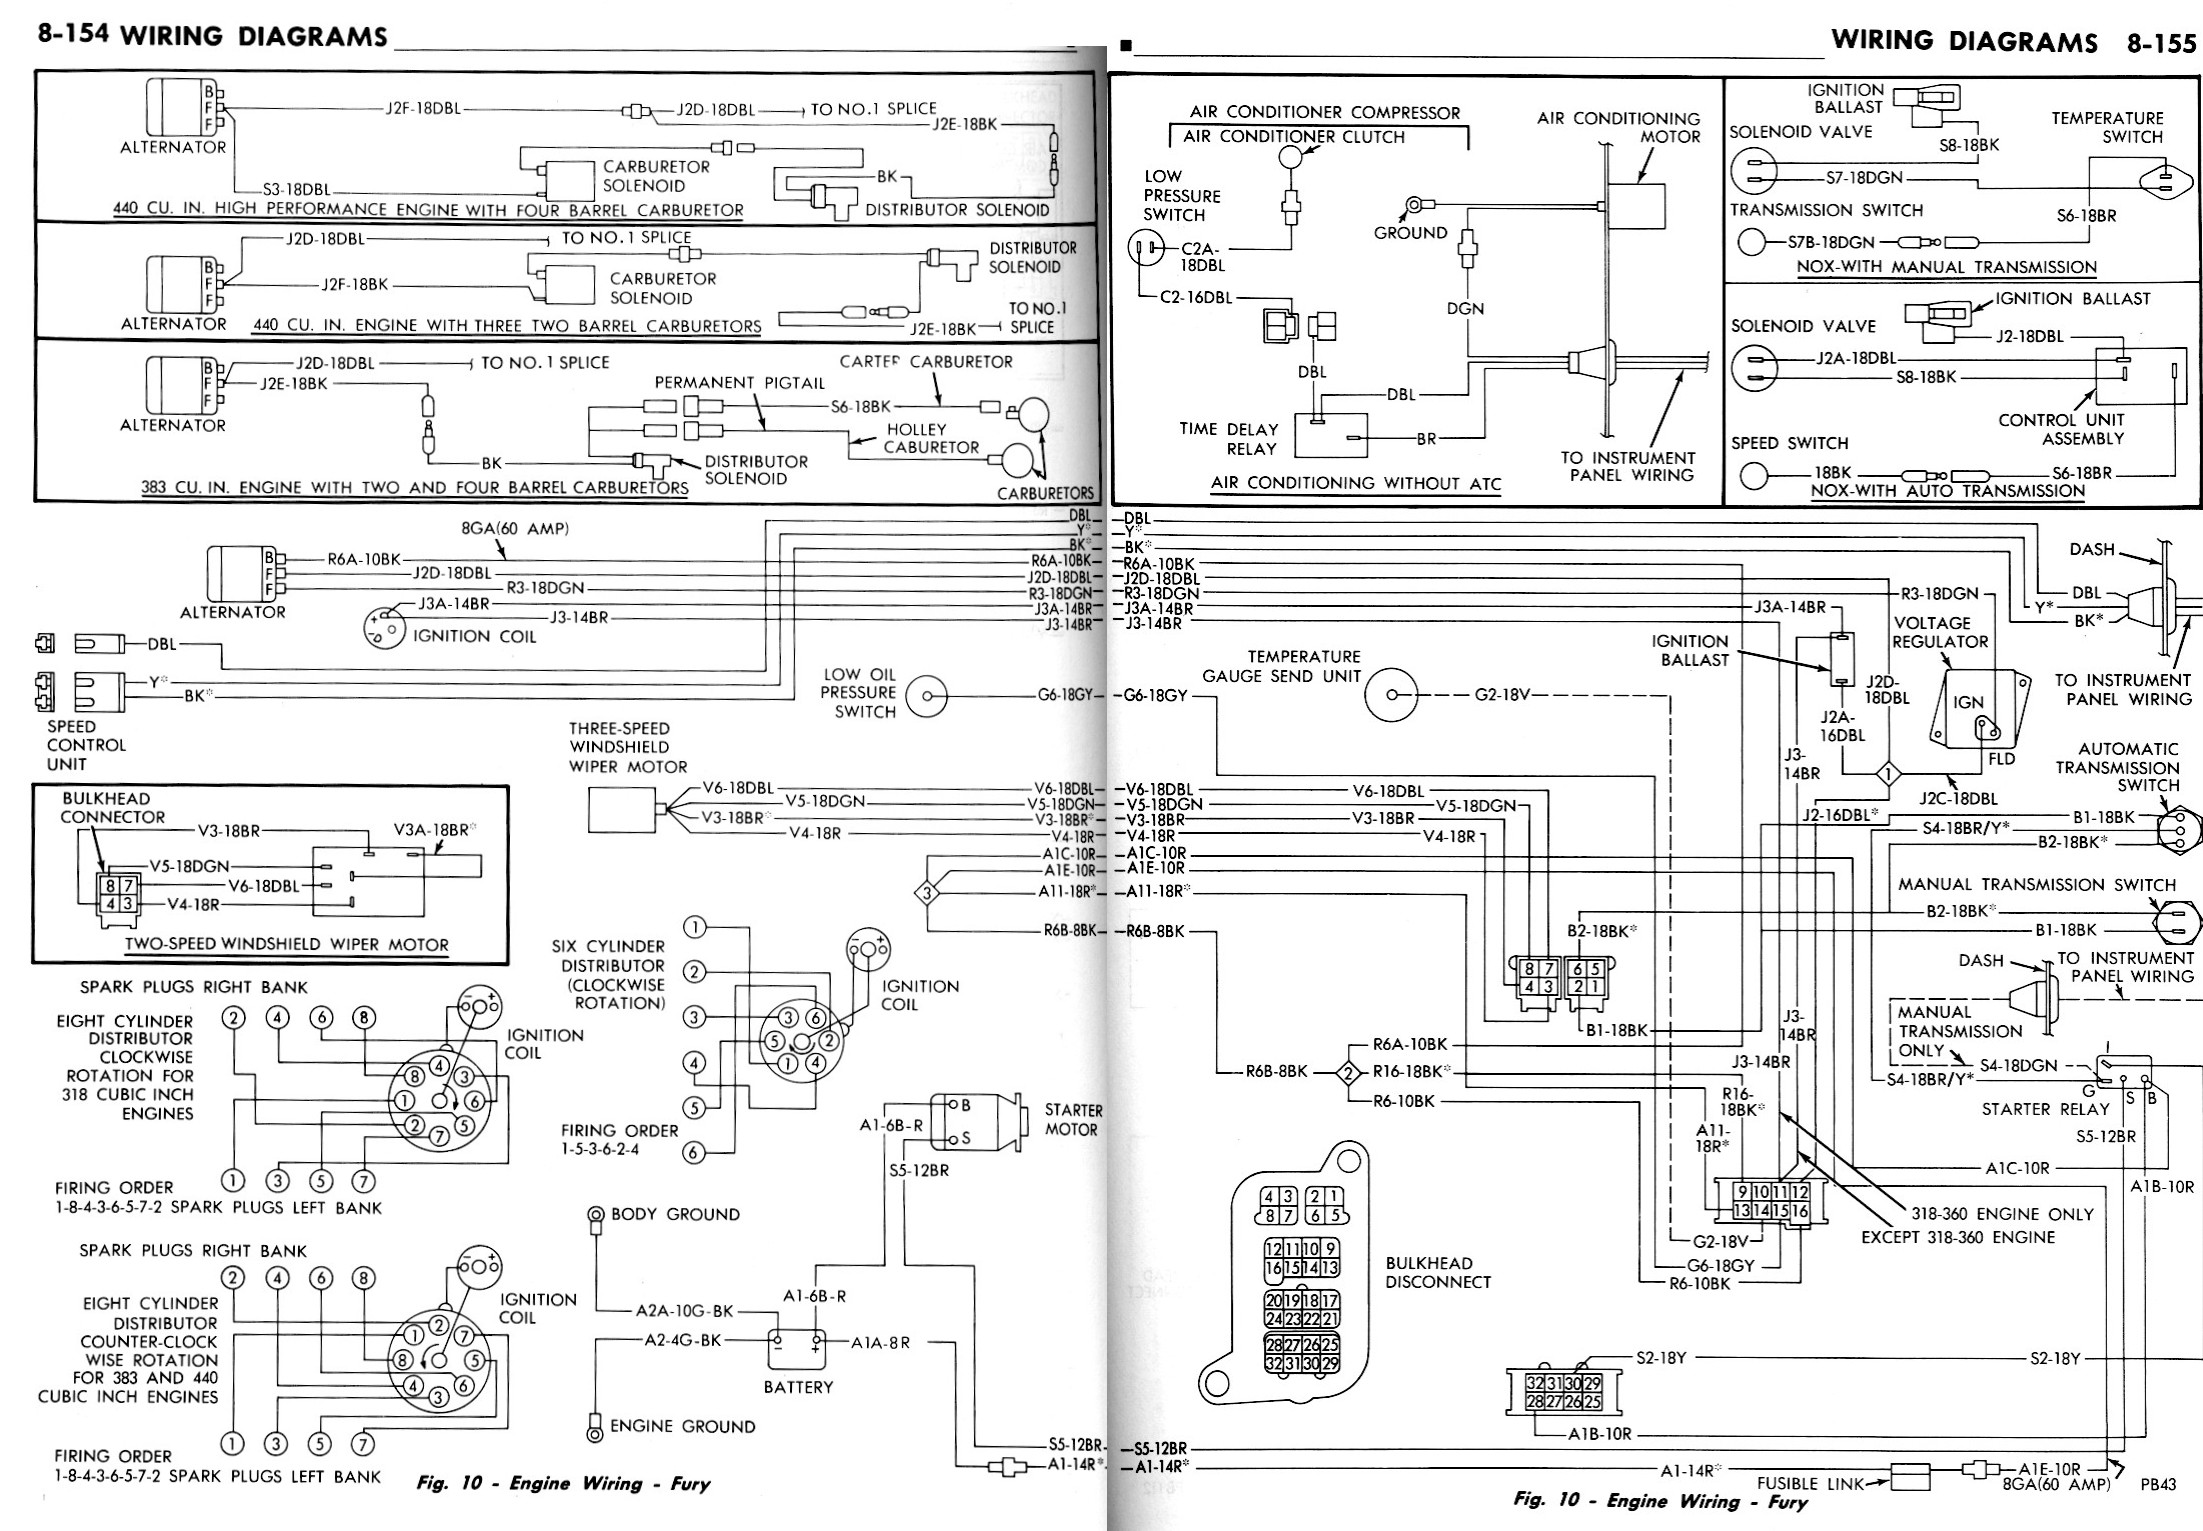 1966 Plymouth Fury Wiring Diagram 69 Fuse Box Auto